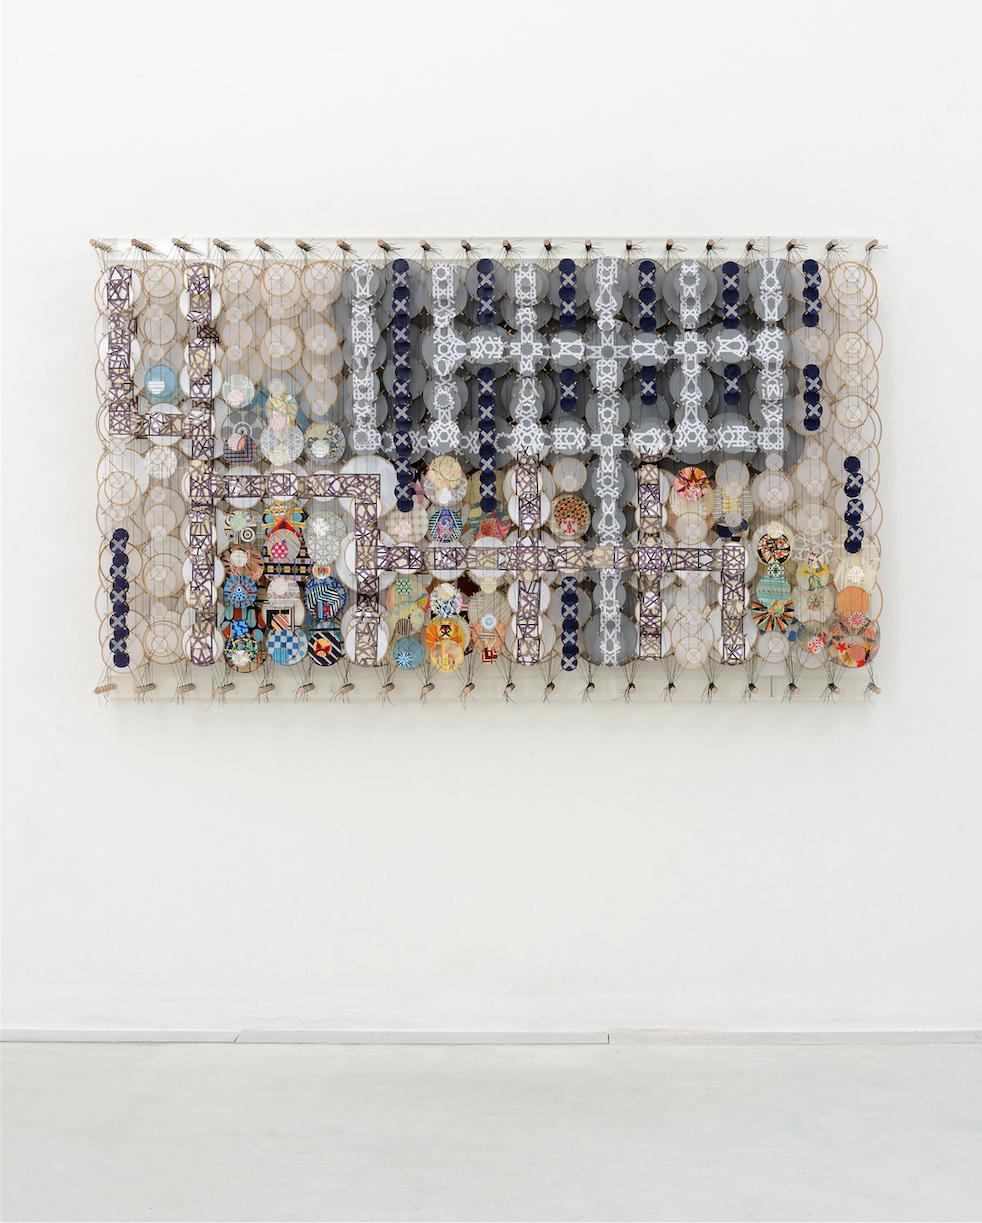 Jacob Hashimoto, The Moutain Builders